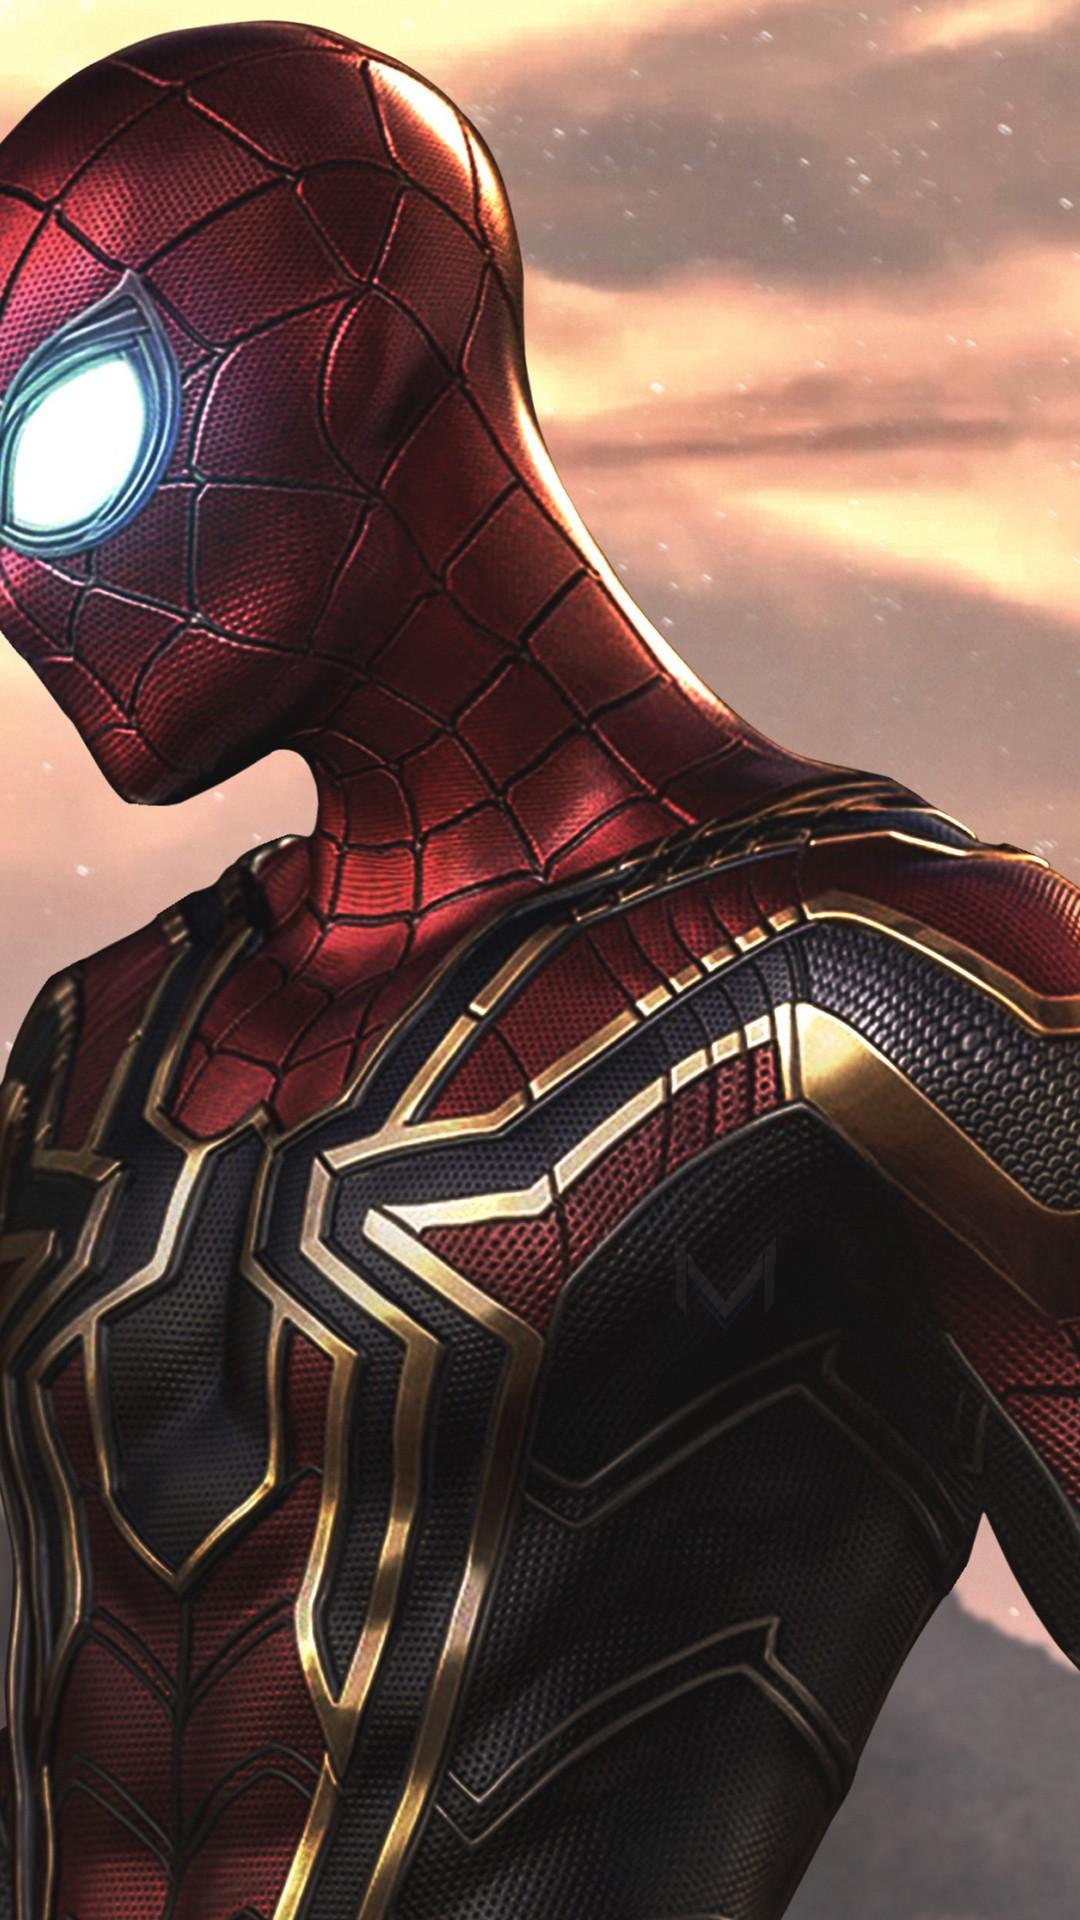 Spider Man 2019 Far From Home Iphone Wallpapers With